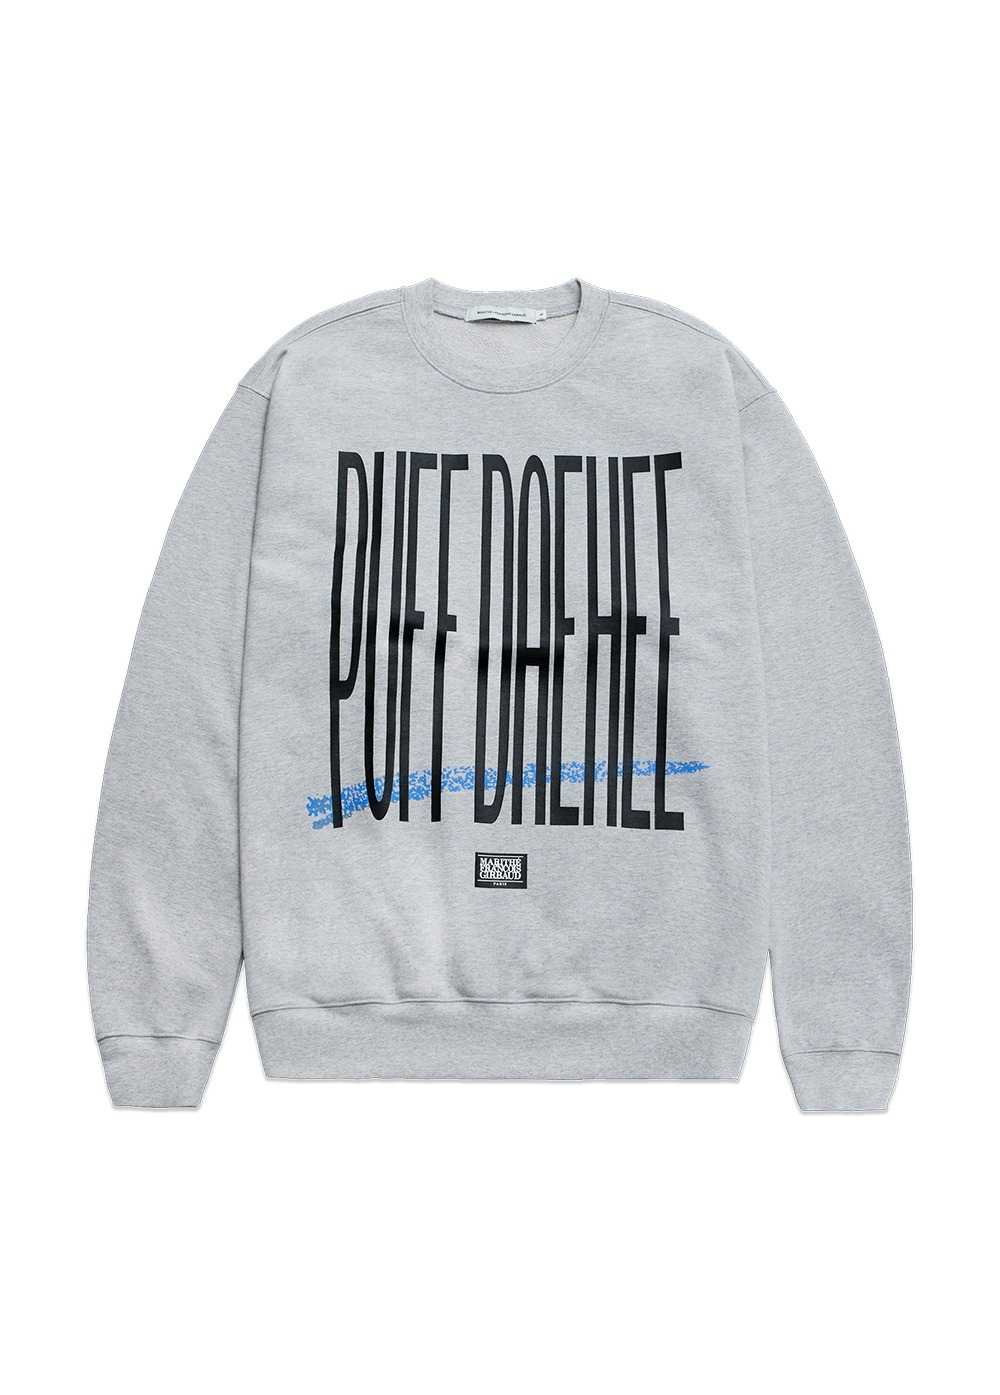 MARITHE X 8BALLTOWN PUFF DAEHEE SWEATSHIRT heather gray